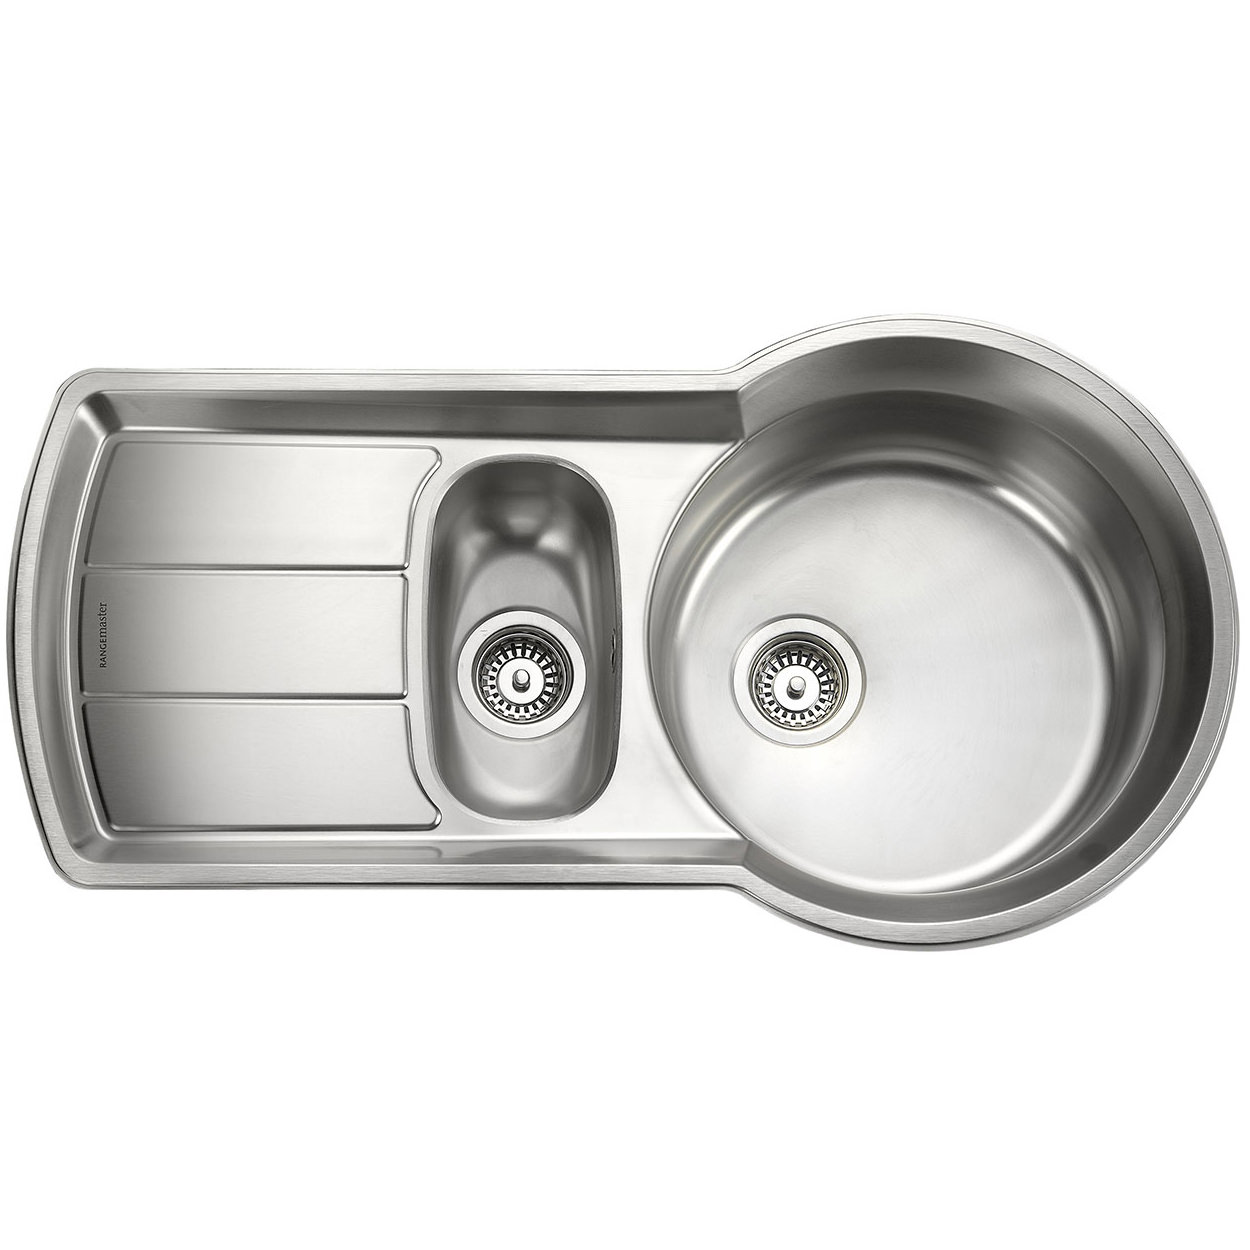 Rangemaster Kitchen Sinks Rangemaster keyhole 15 bowl stainless steel kitchen sink workwithnaturefo